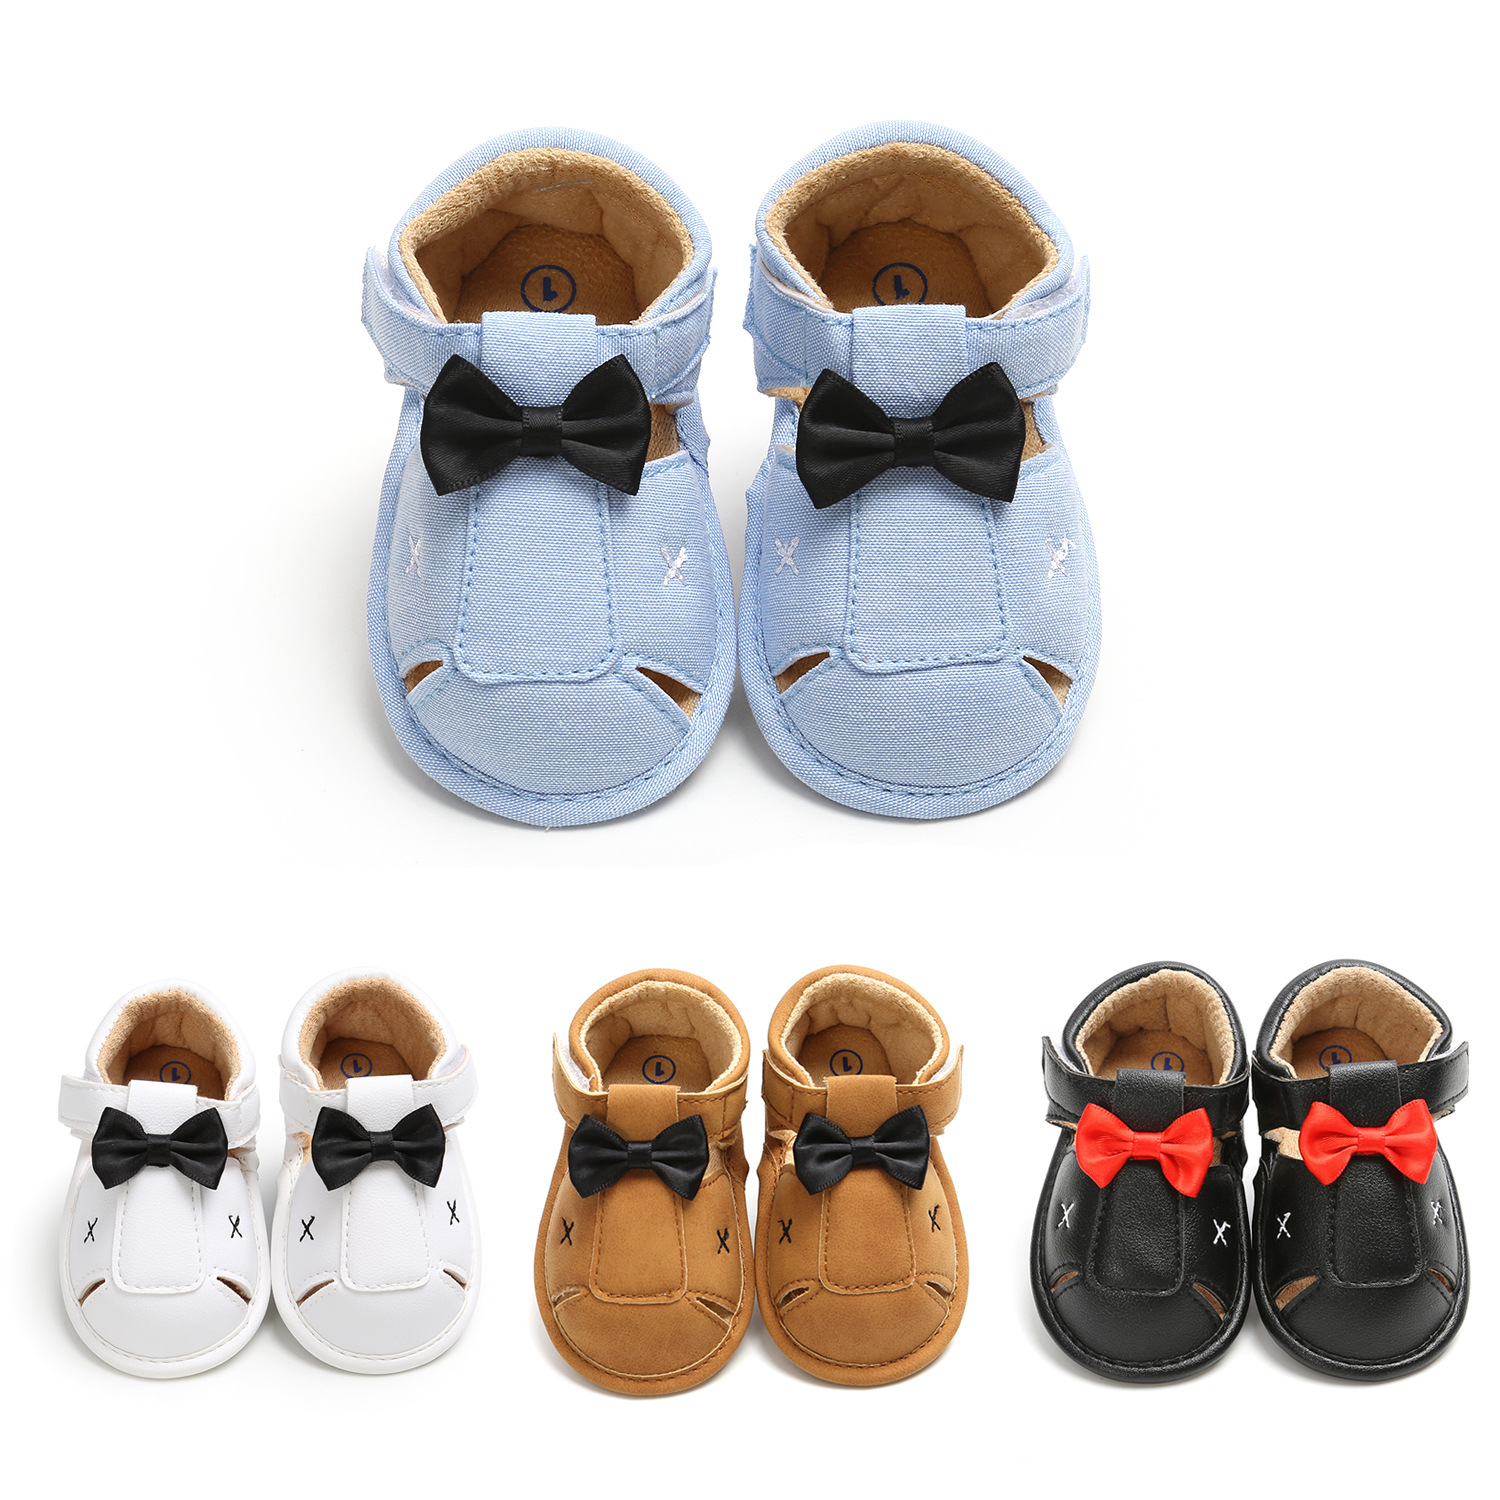 2020 Summer New Baby Boys Sandals Bow Tie Gentleman Baby Shoes Soft Sole Infant Toddler First Walkers Baby Crib Shoes